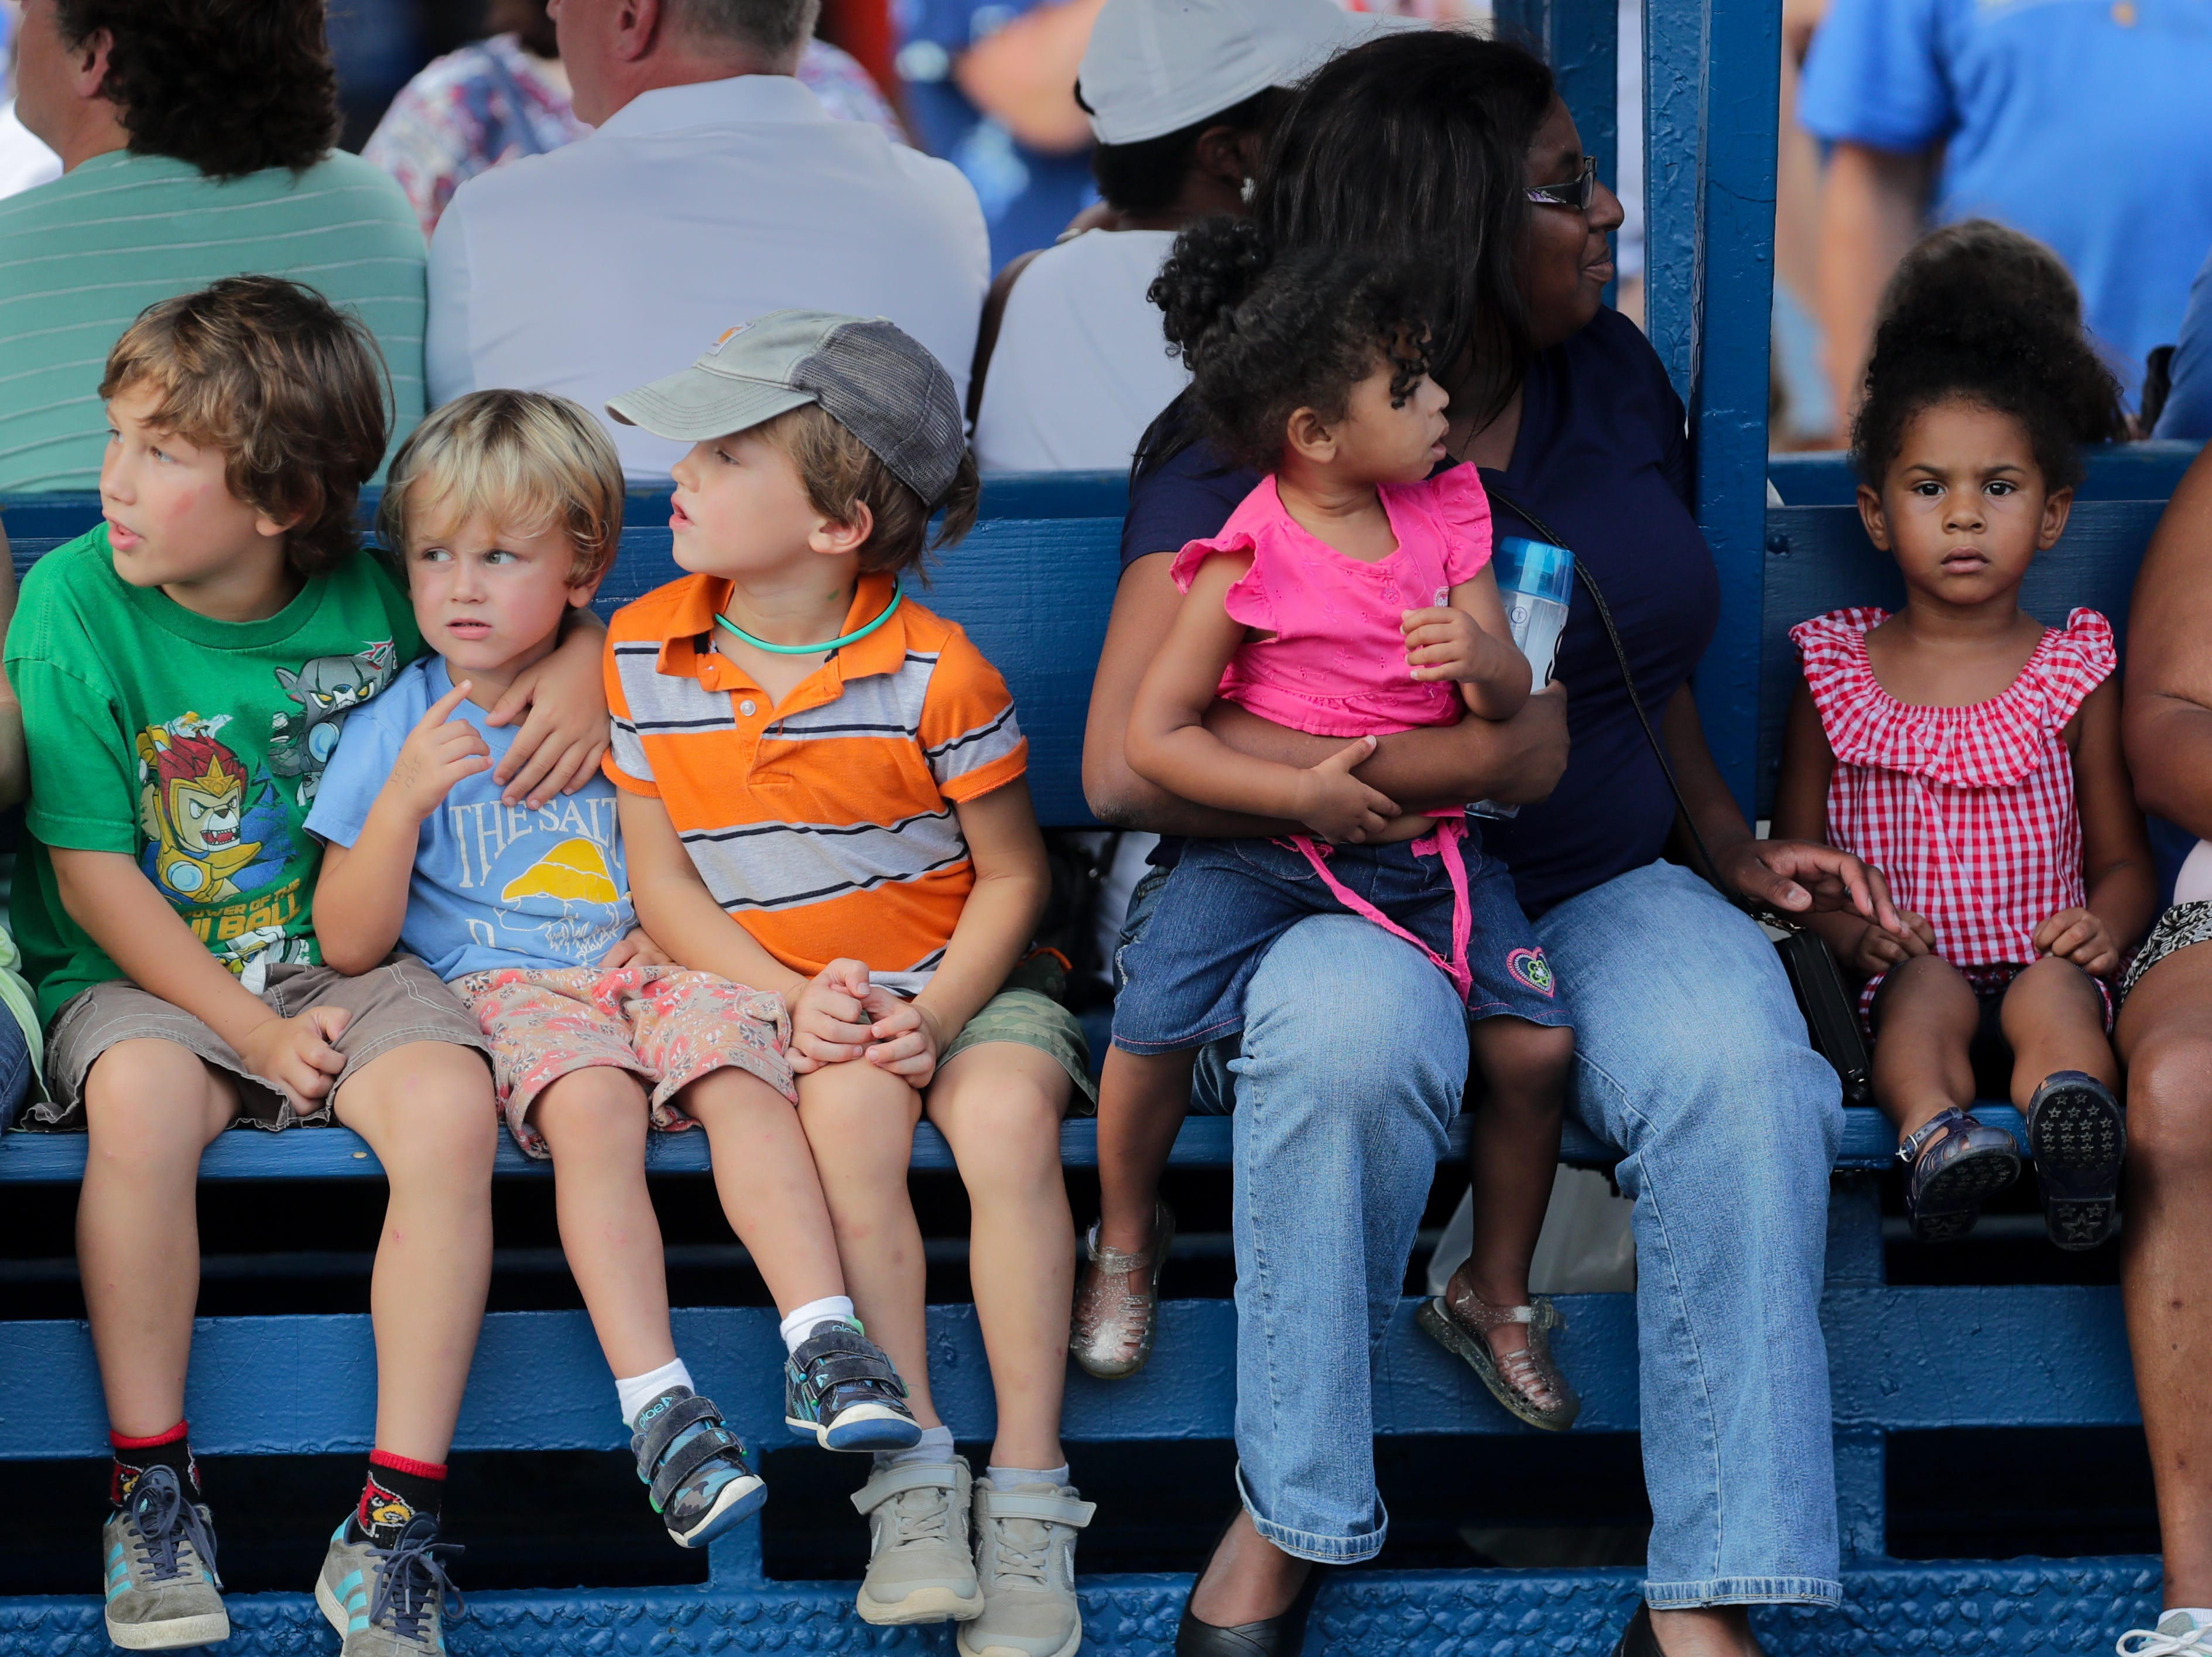 Scenes at the Kentucky State Fair.